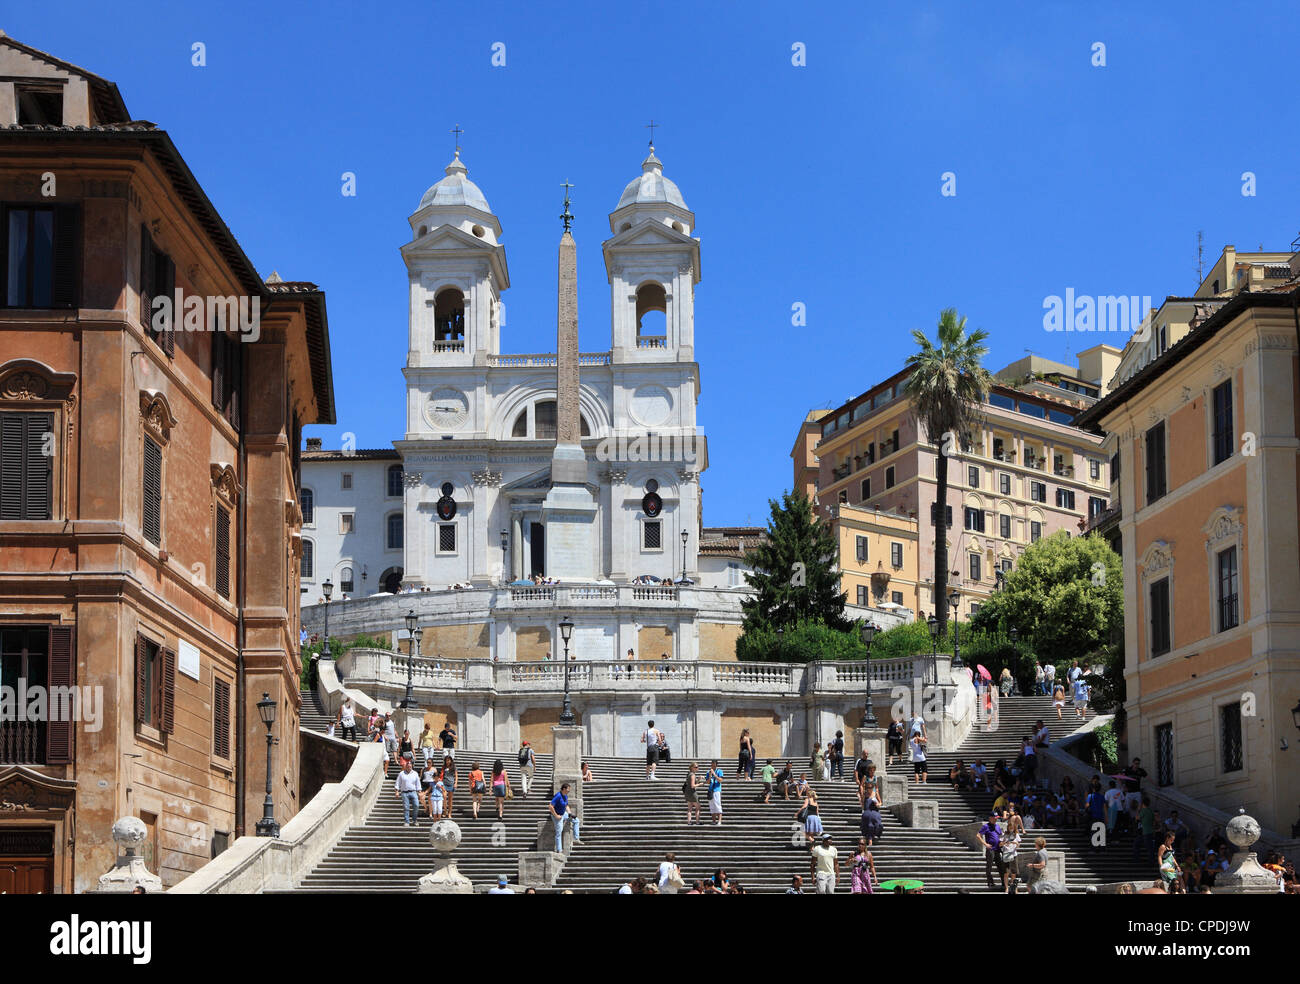 Trinita dei Monti church, Rome, Lazio, Italy, Europe - Stock Image